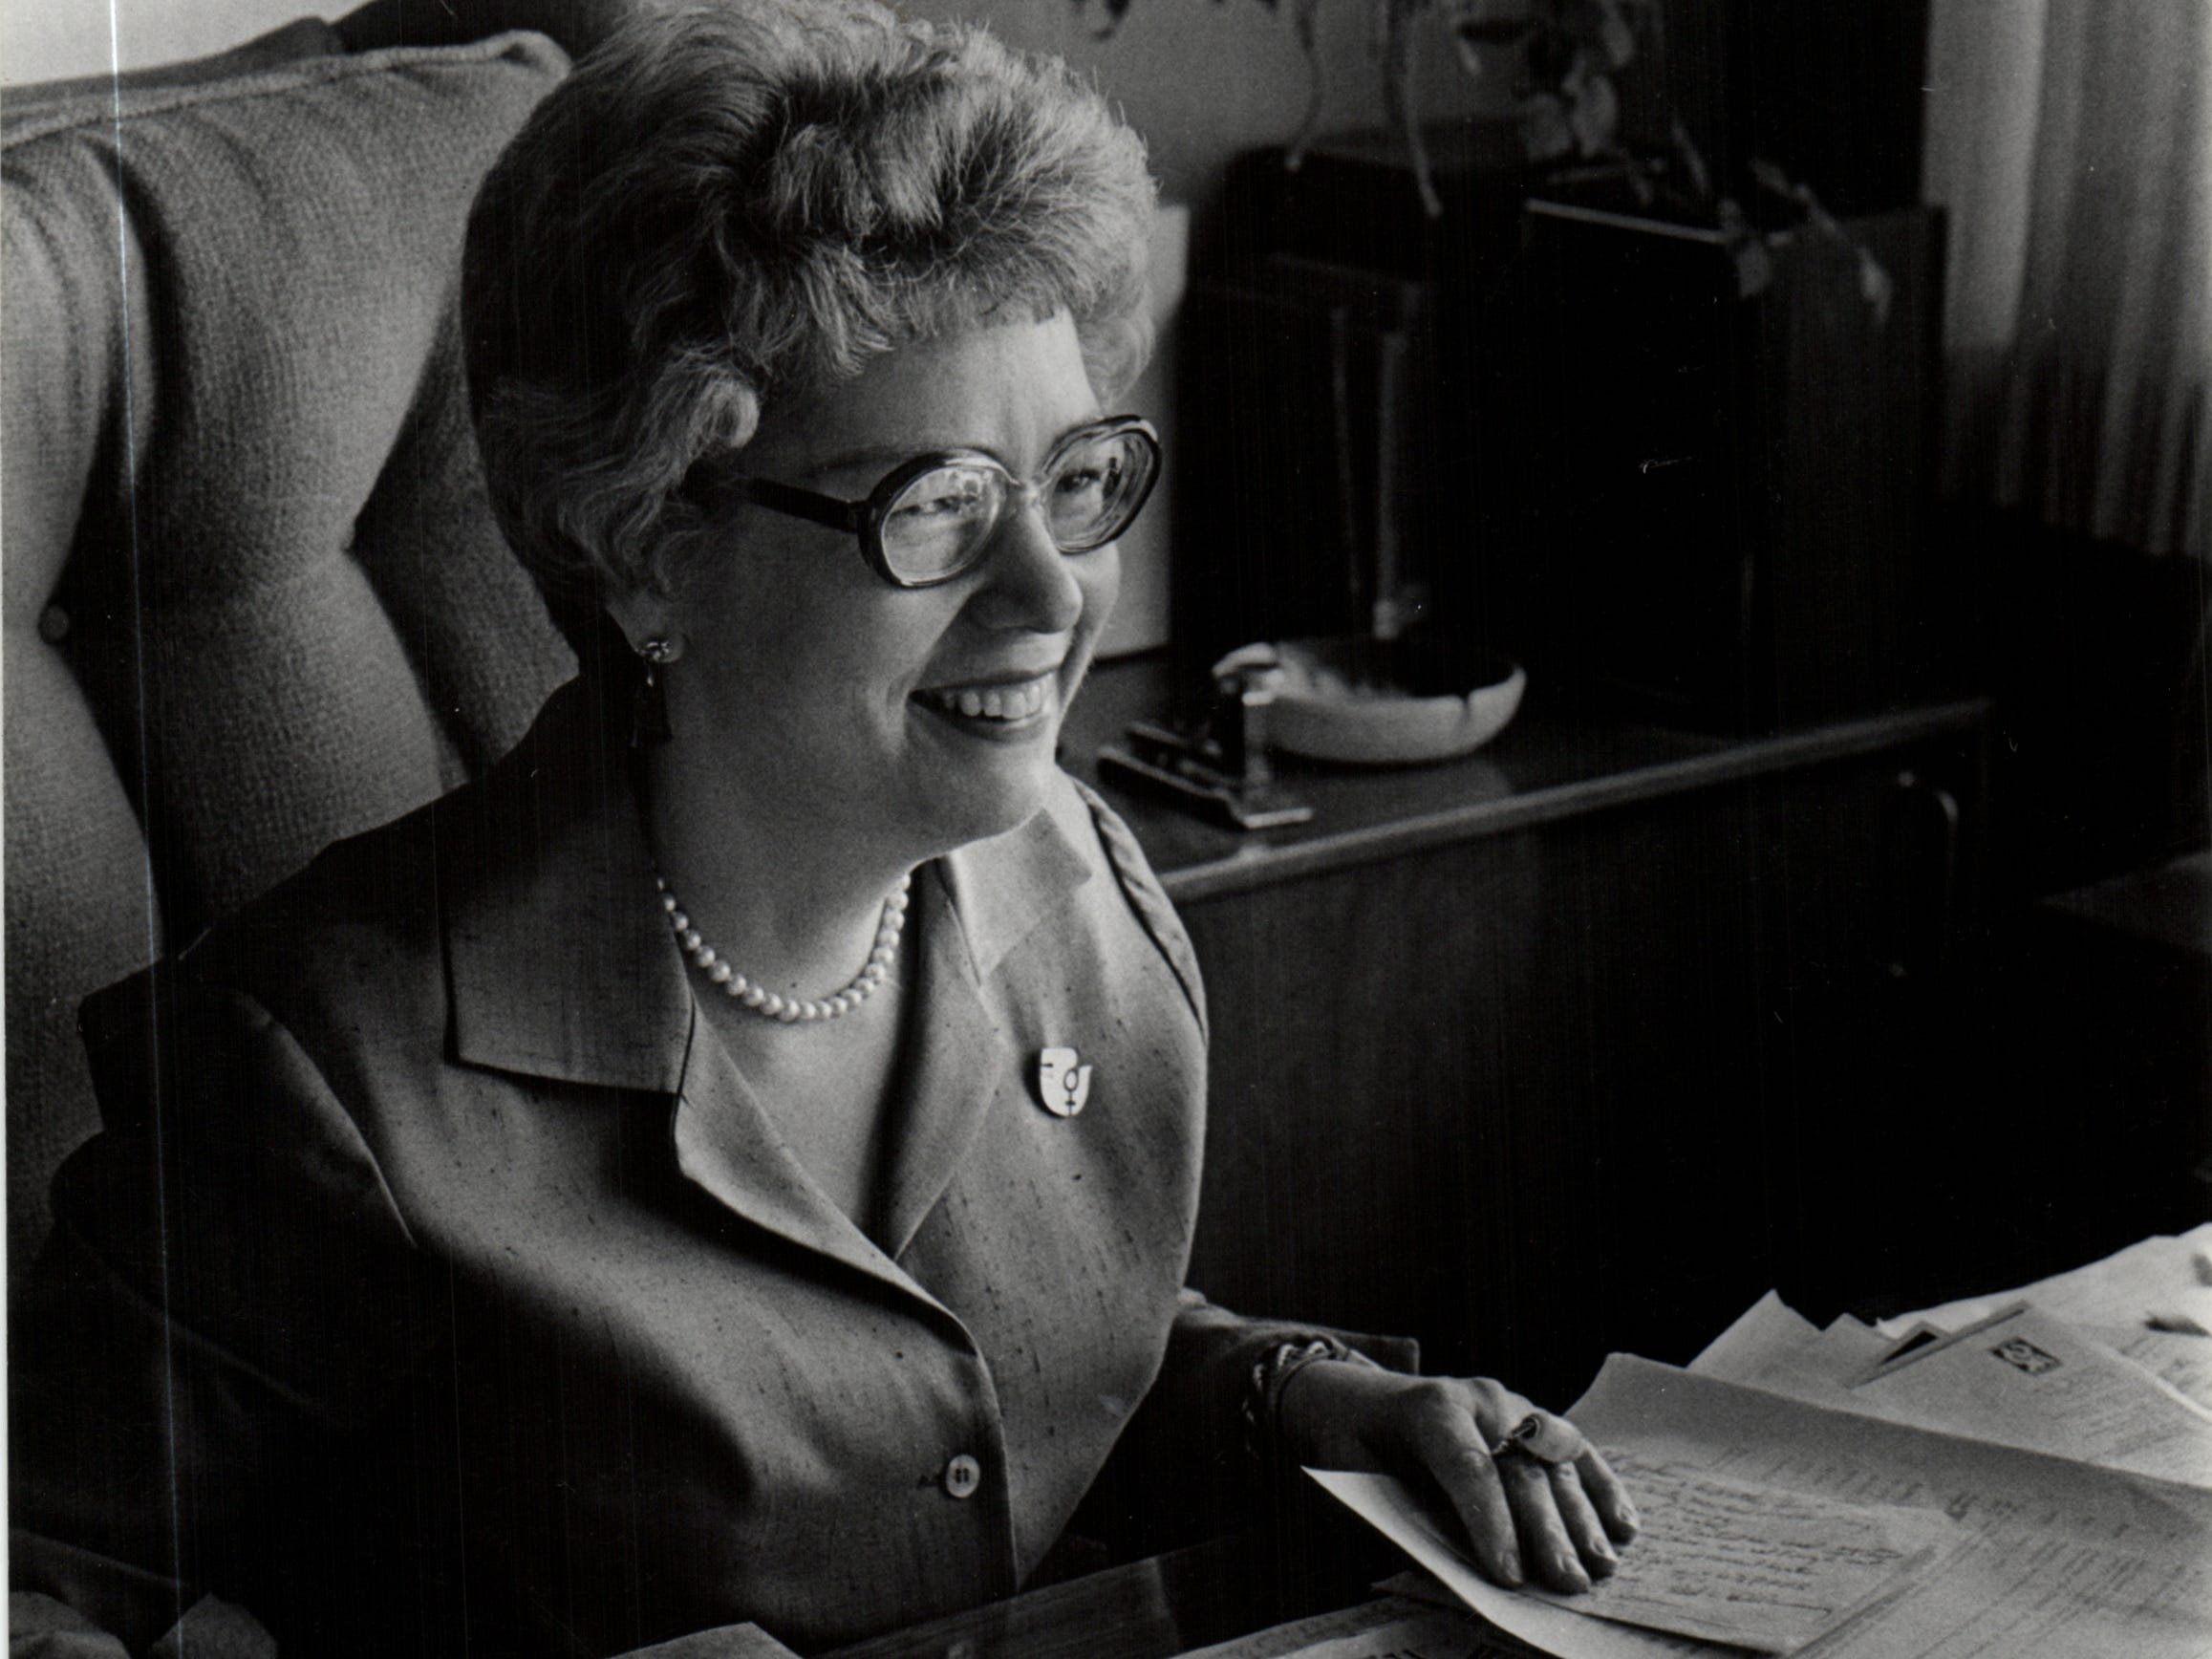 A photo of Maryann Mahaffey from the Detroit Free Press archive. Mahaffey's mentees are urging the City of Detroit and Wayne State University to honor Mahffey by naming a building after her.